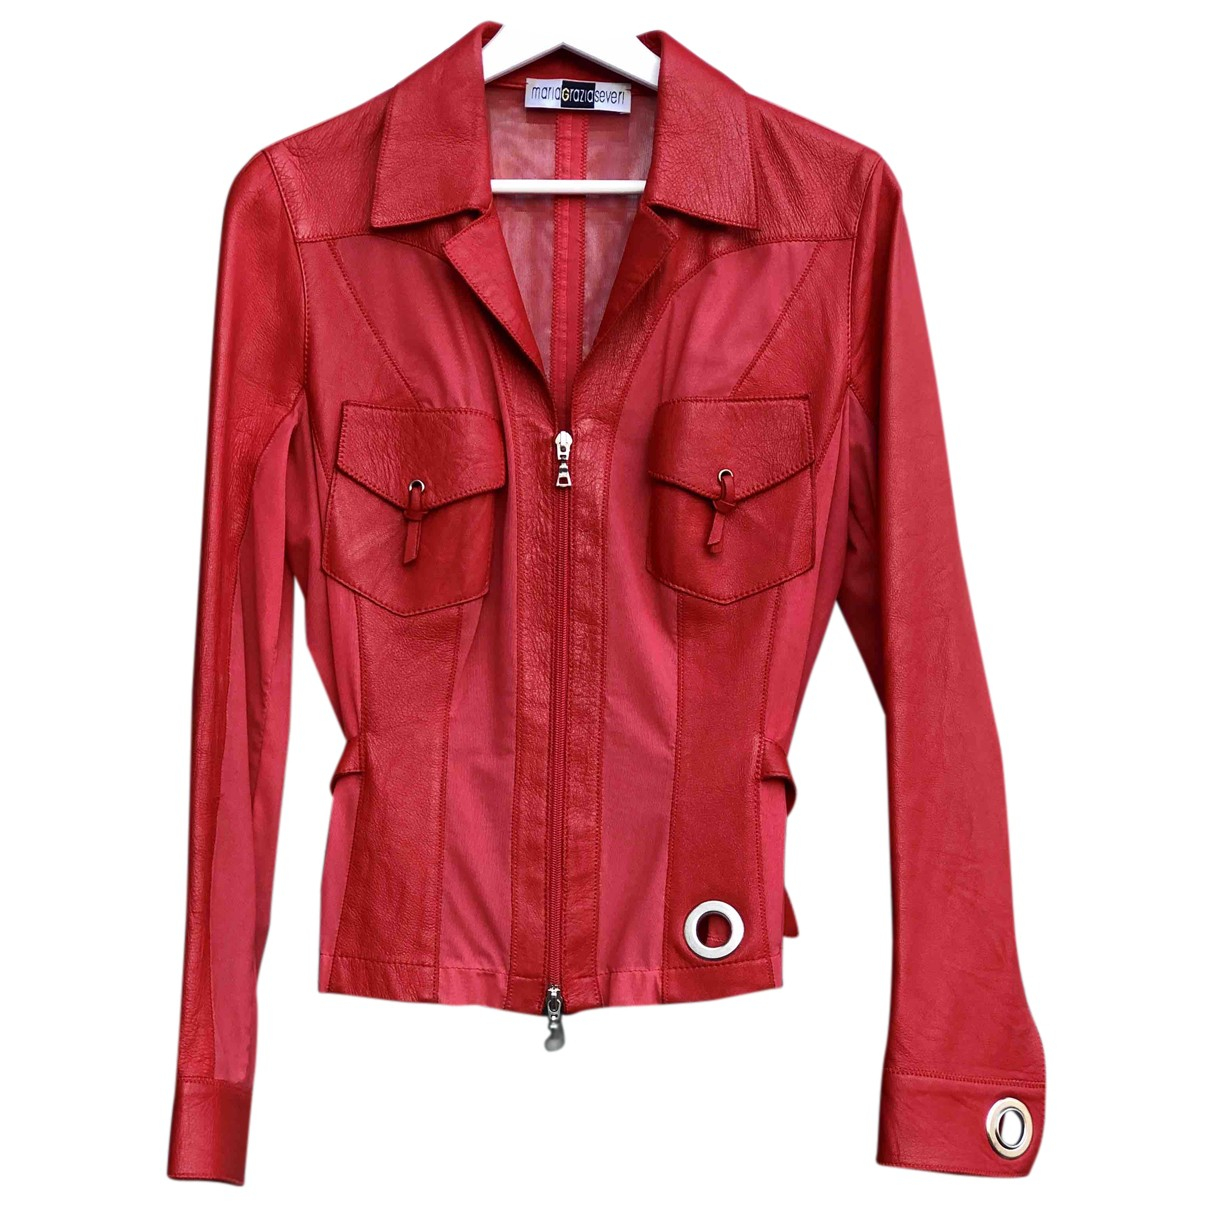 Maria Grazia Severi N Red Leather Leather jacket for Women M International